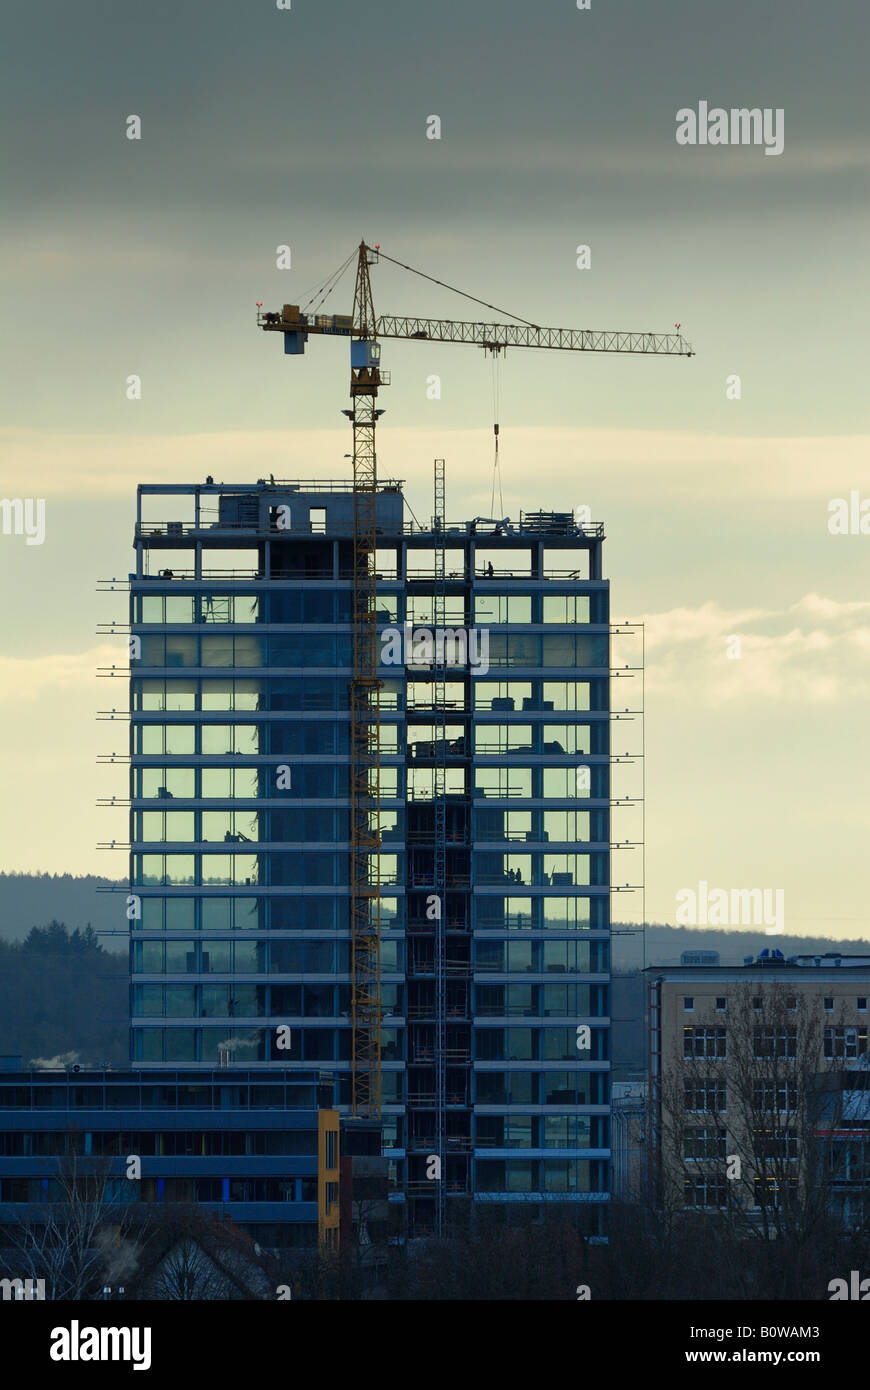 Construction of the Hegau Tower, Singen am Hohentwiel, Baden-Wuerttemberg, Germany, Europe - Stock Image